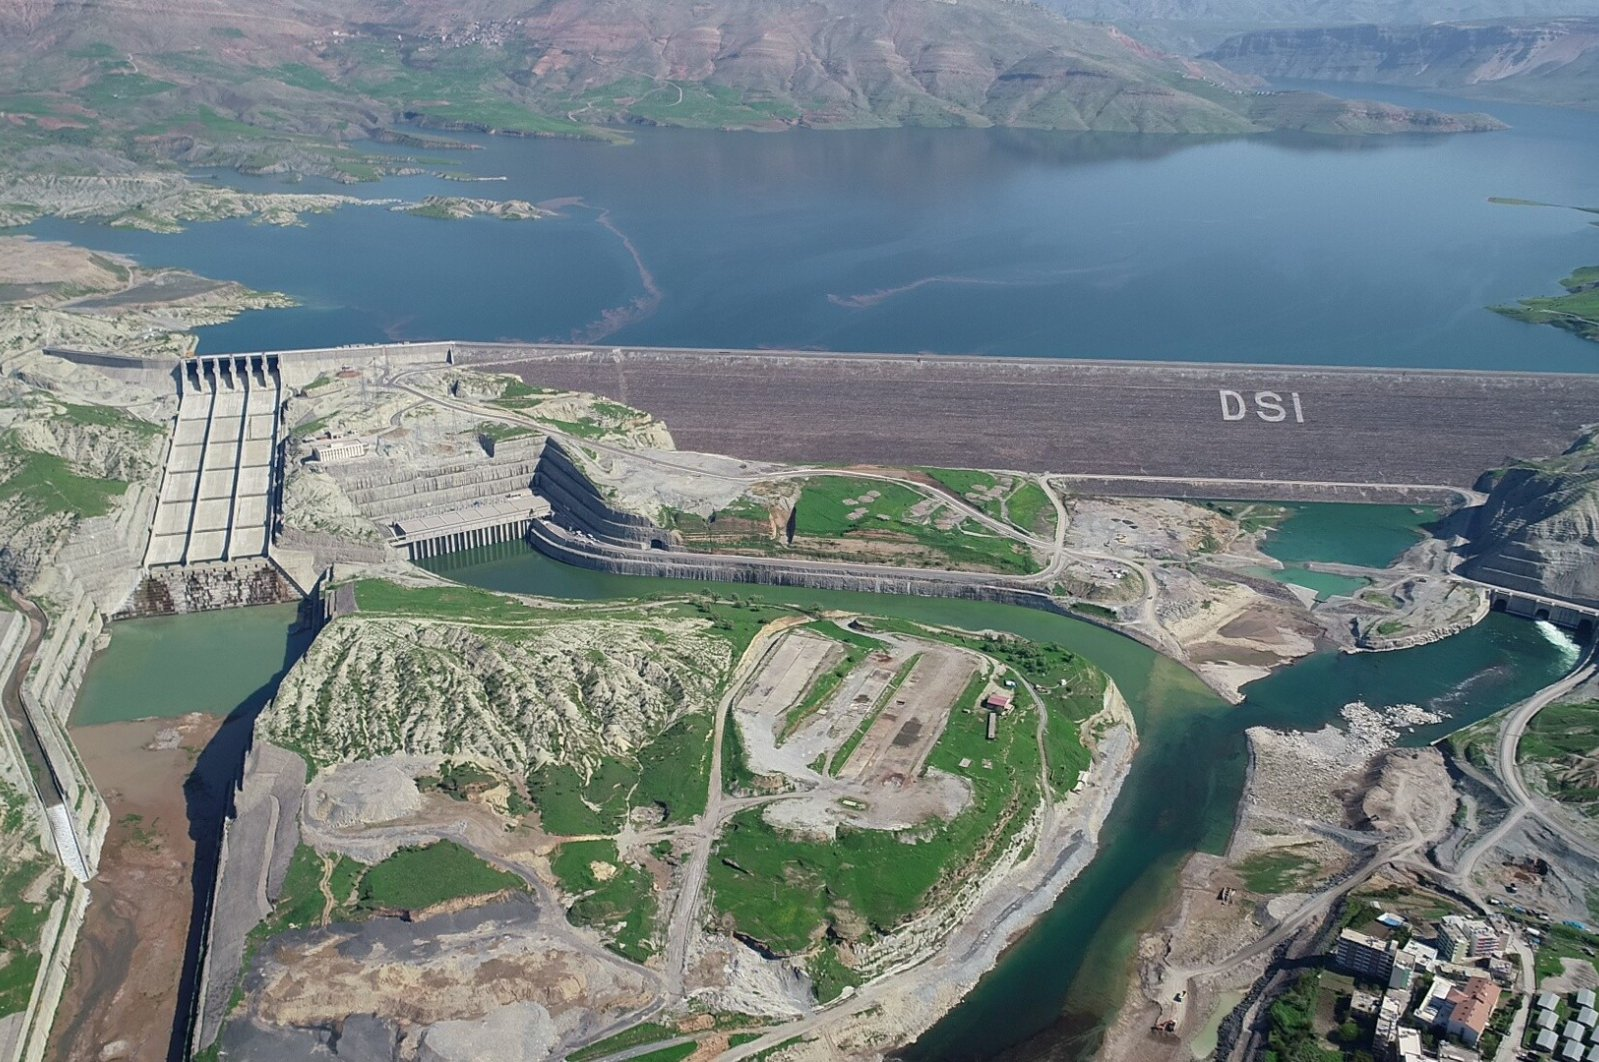 The Ilısu Dam is expected to generate 4.1 billion kilowatt-hour electricity per year. (IHA Photo)